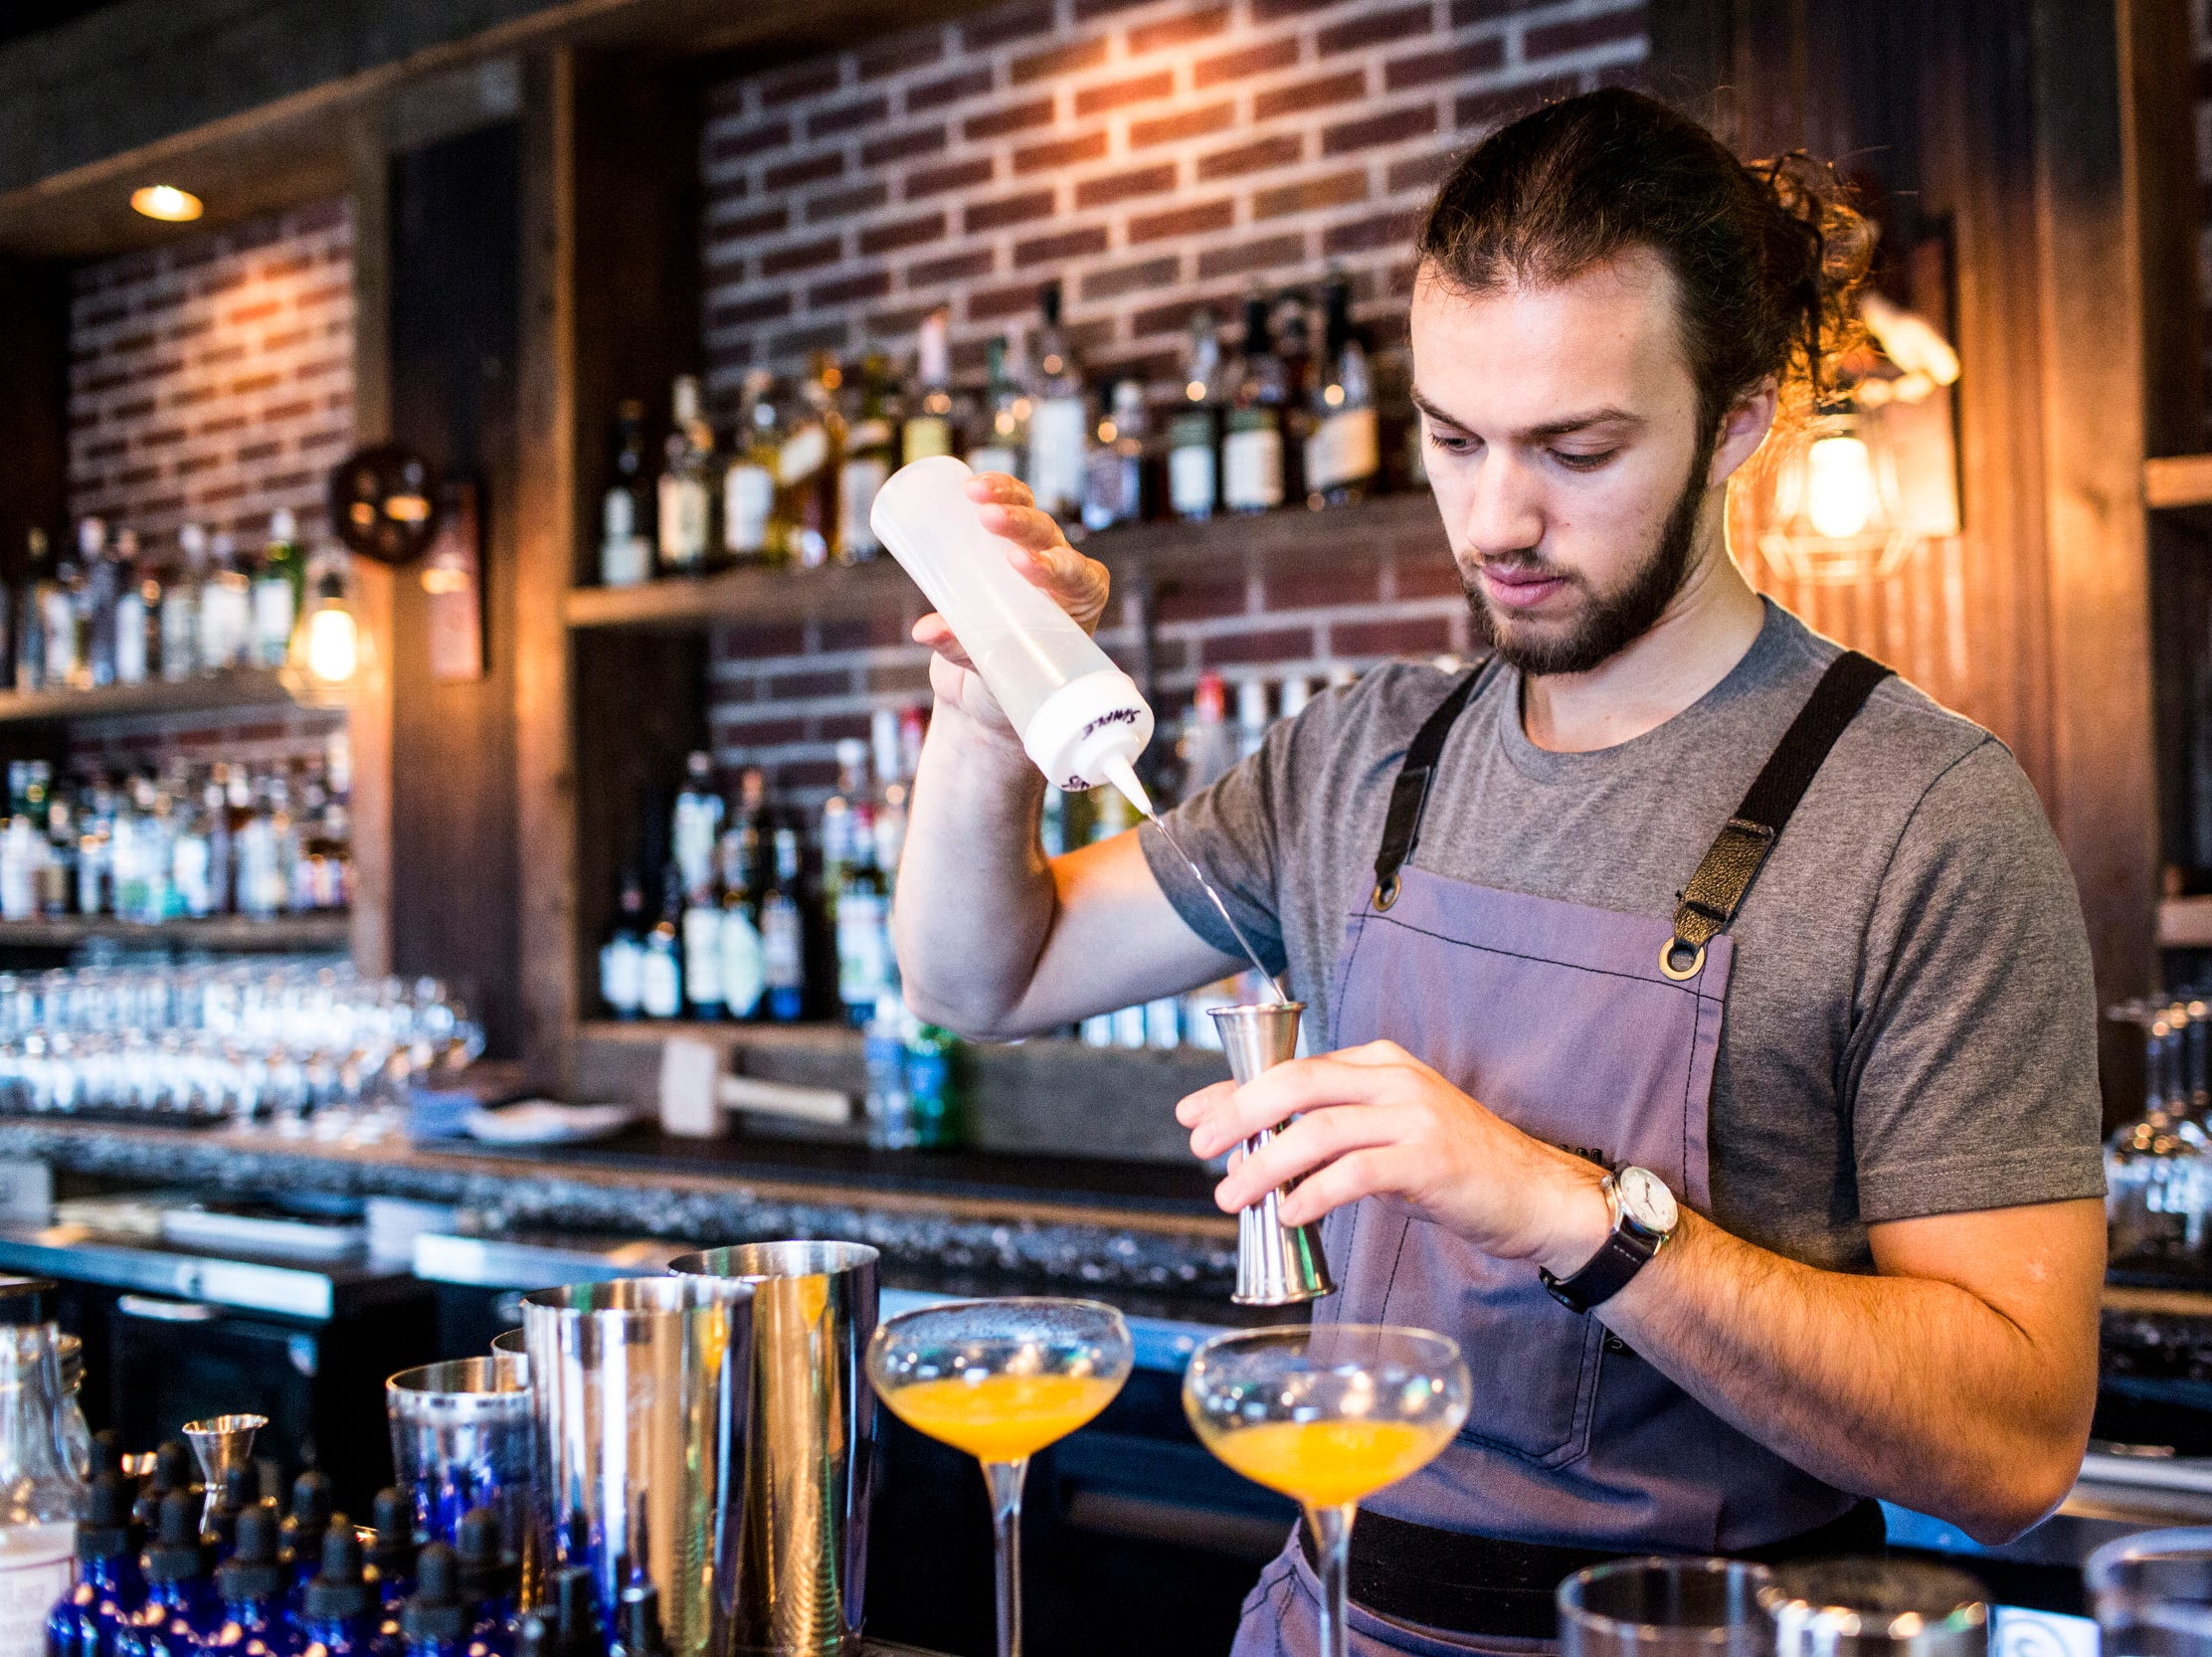 February 10, 2019 - Robert Schutt creates a drink during Sunday brunch at PO Press Public House & Provisions in Collierville. PO Press Public House & Provisions is located at 148 N Main St. in Collierville.